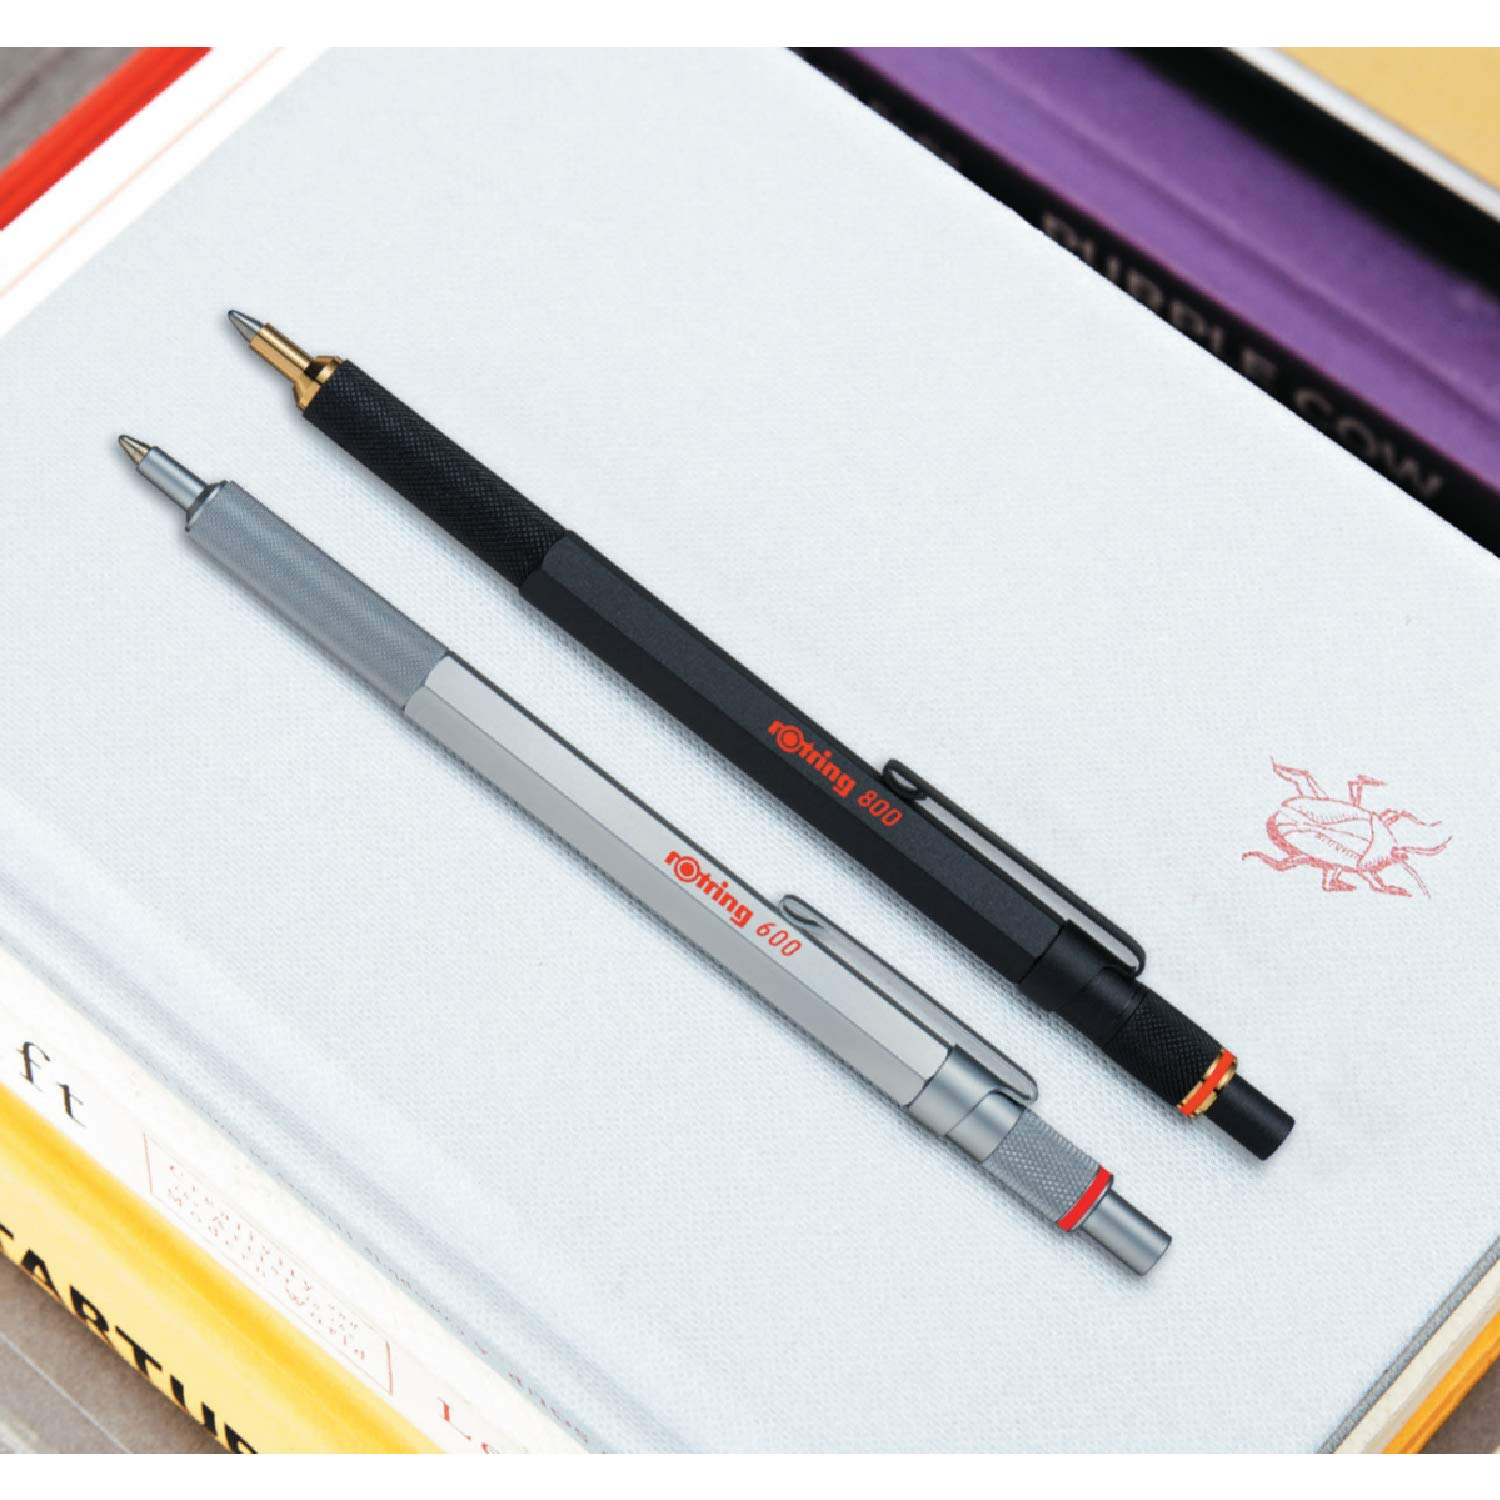 rOtring 800 Retractable Ballpoint Pen, Medium Point, Silver by Rotring (Image #6)